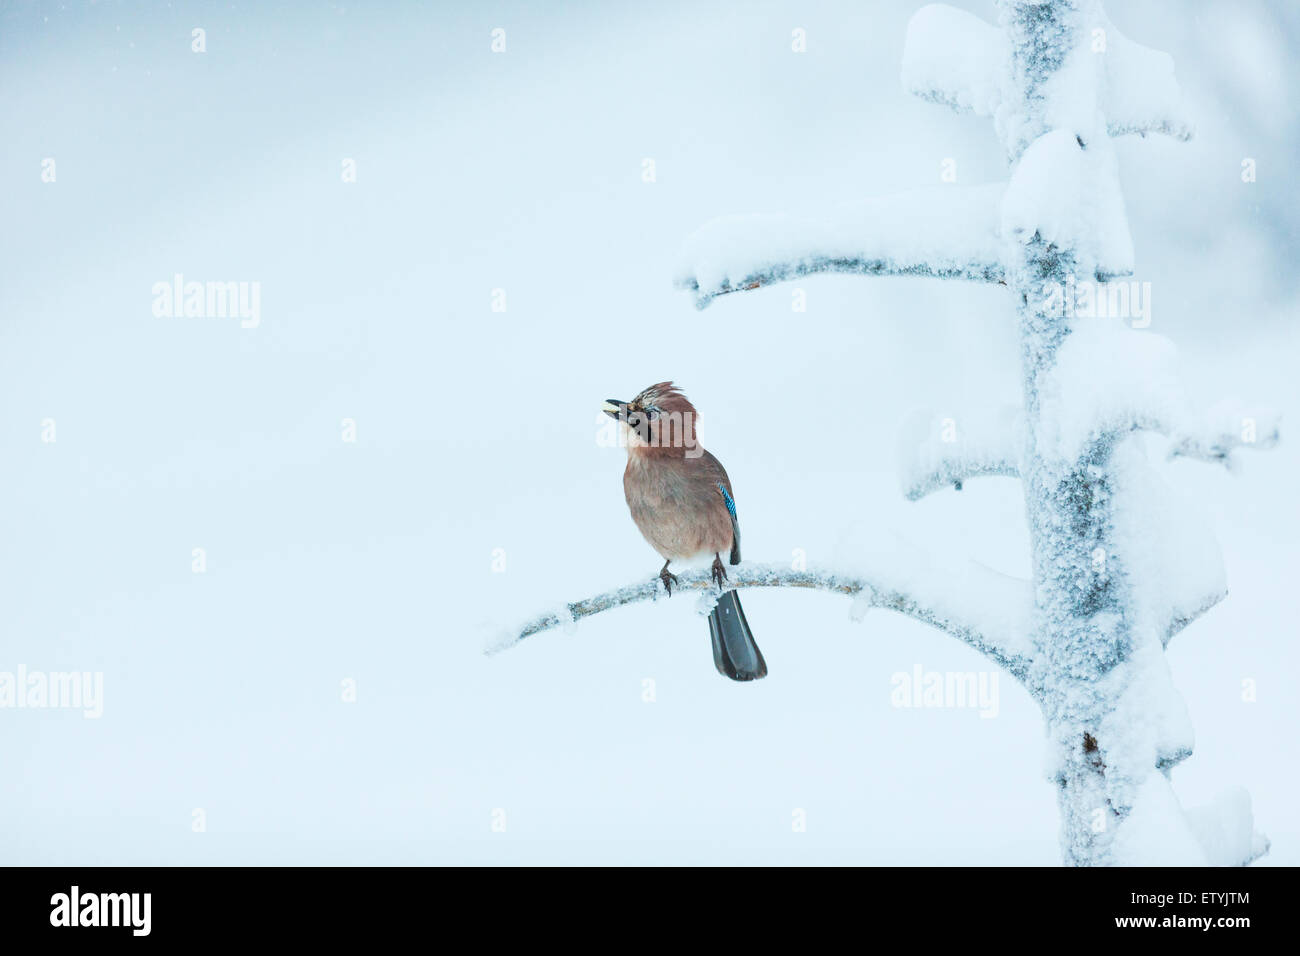 Eurasian Jay, Garrulus glandarius, sitting in a frosty and snowy old tree, looks like he is singing - Stock Image